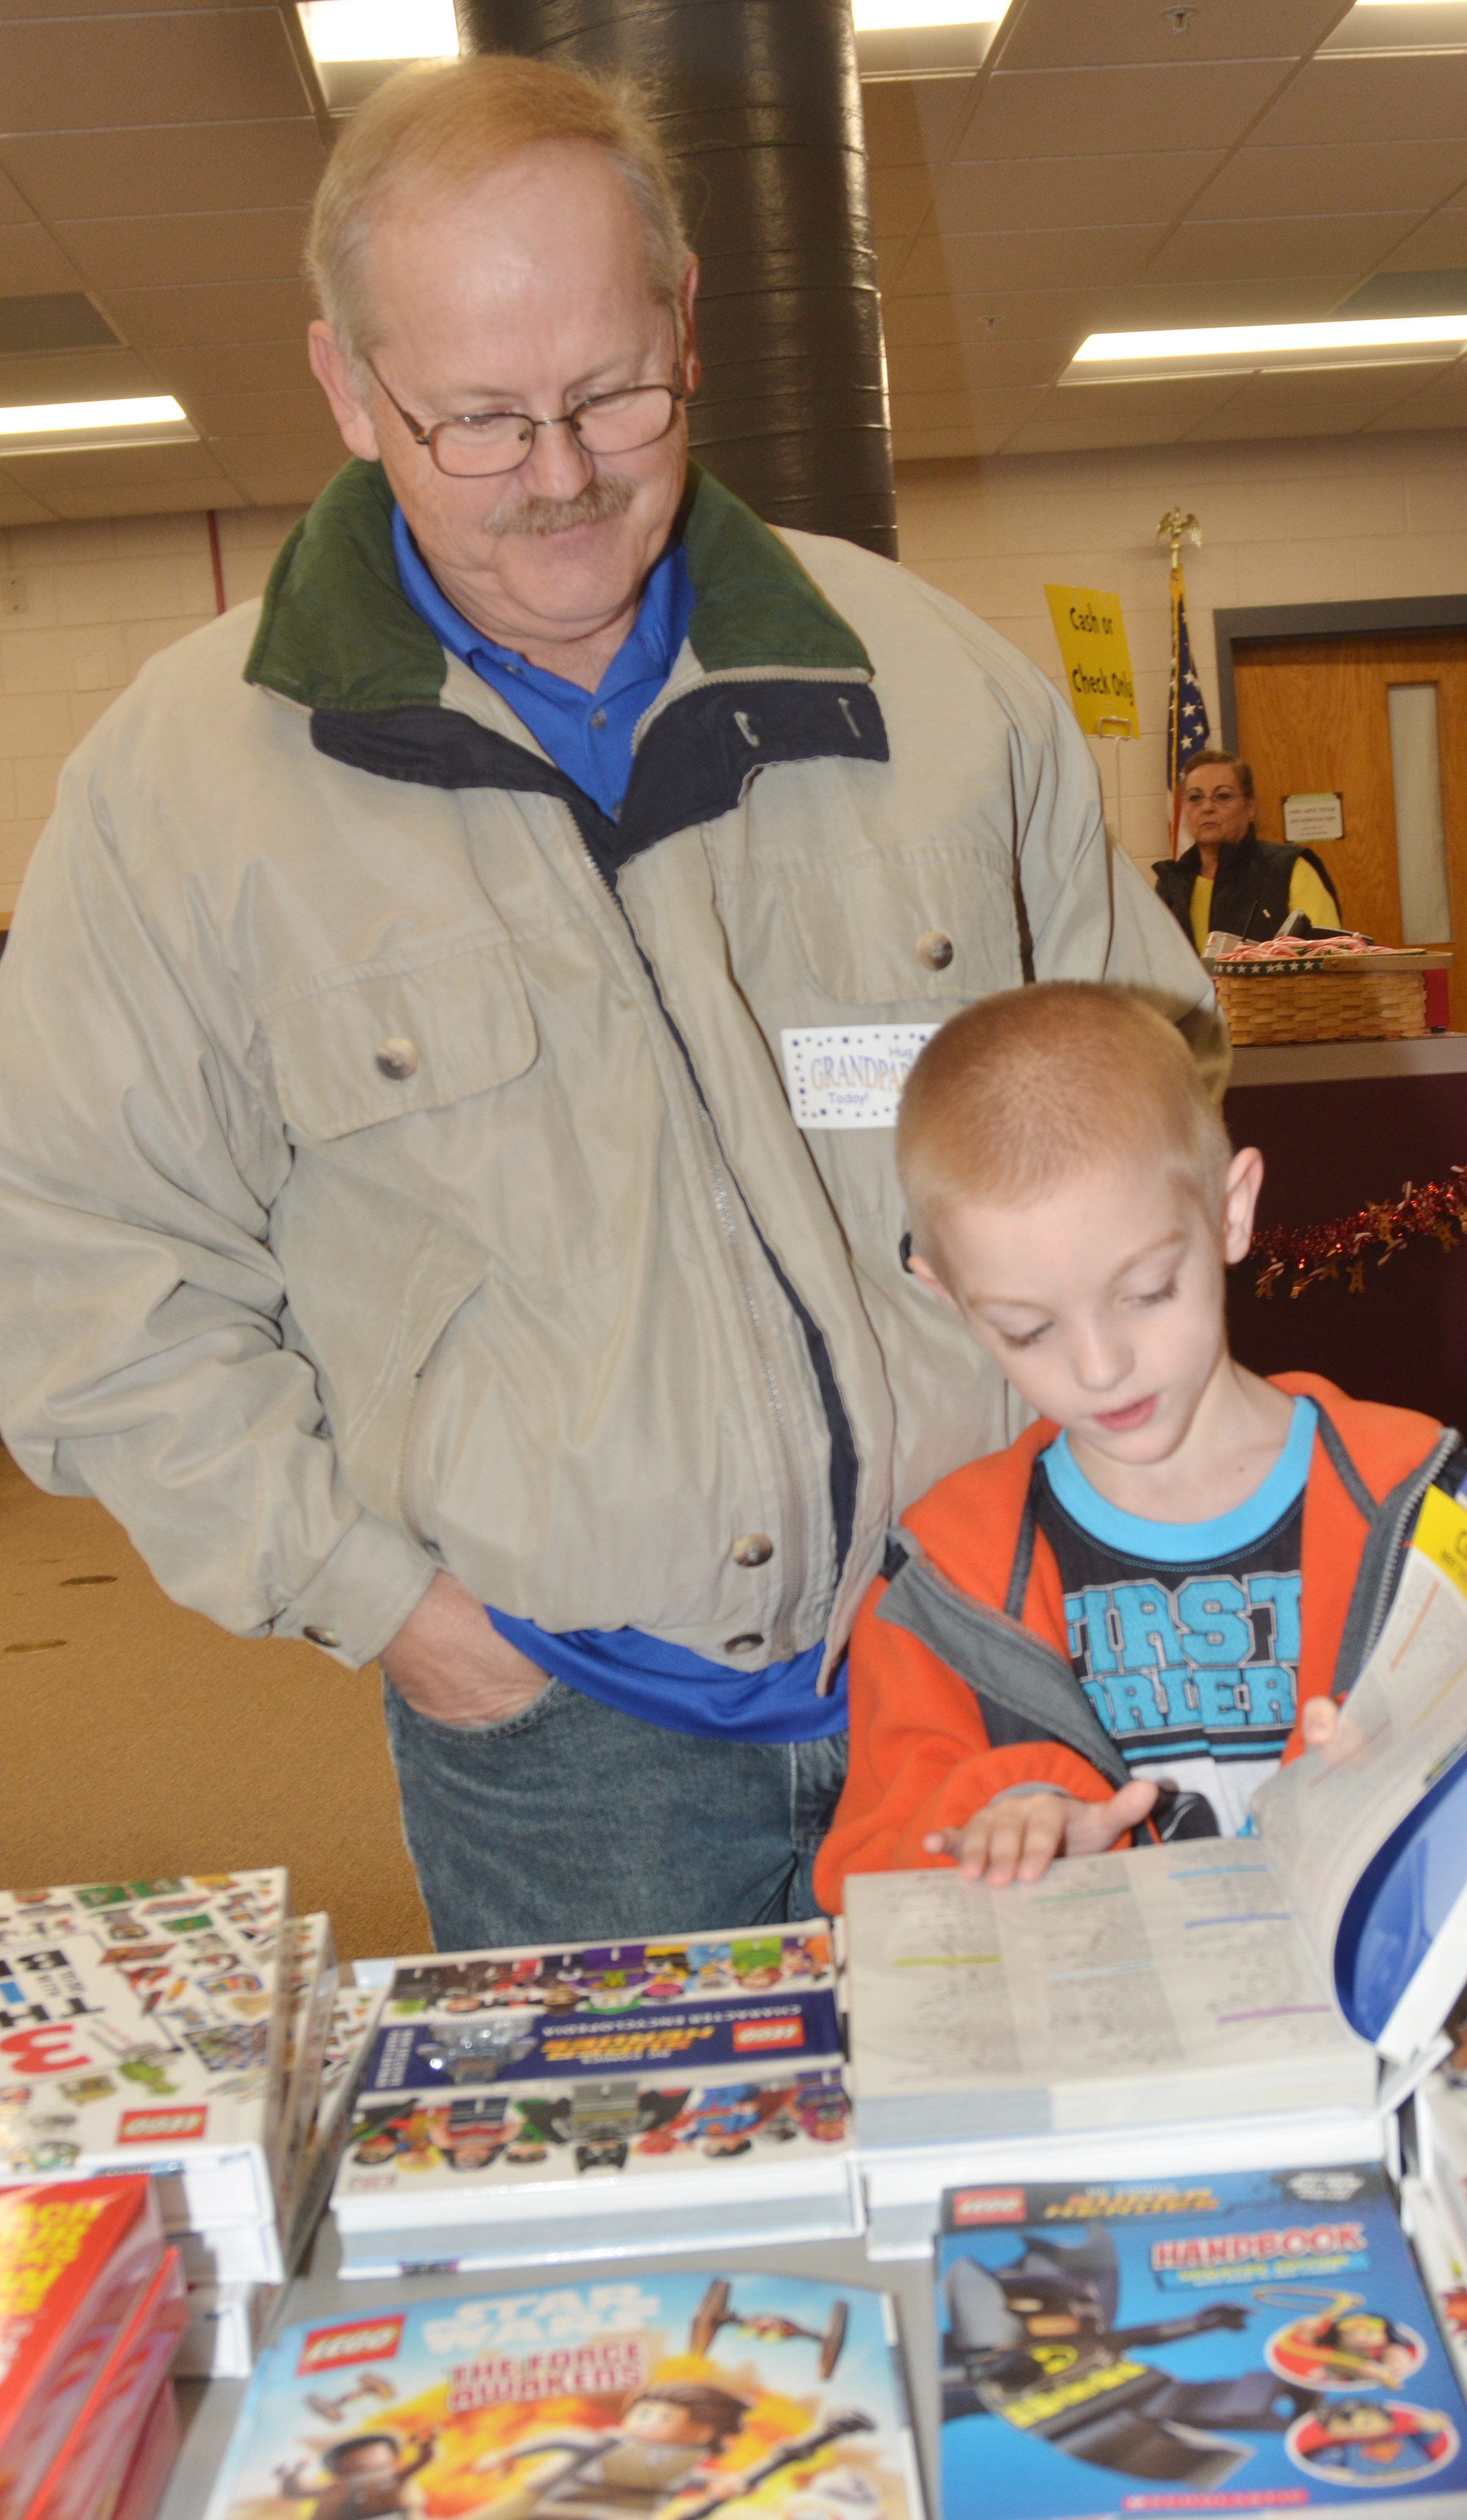 CES second-grader Evan Cundiff looks at books with his grandfather, Lynn Colvin.